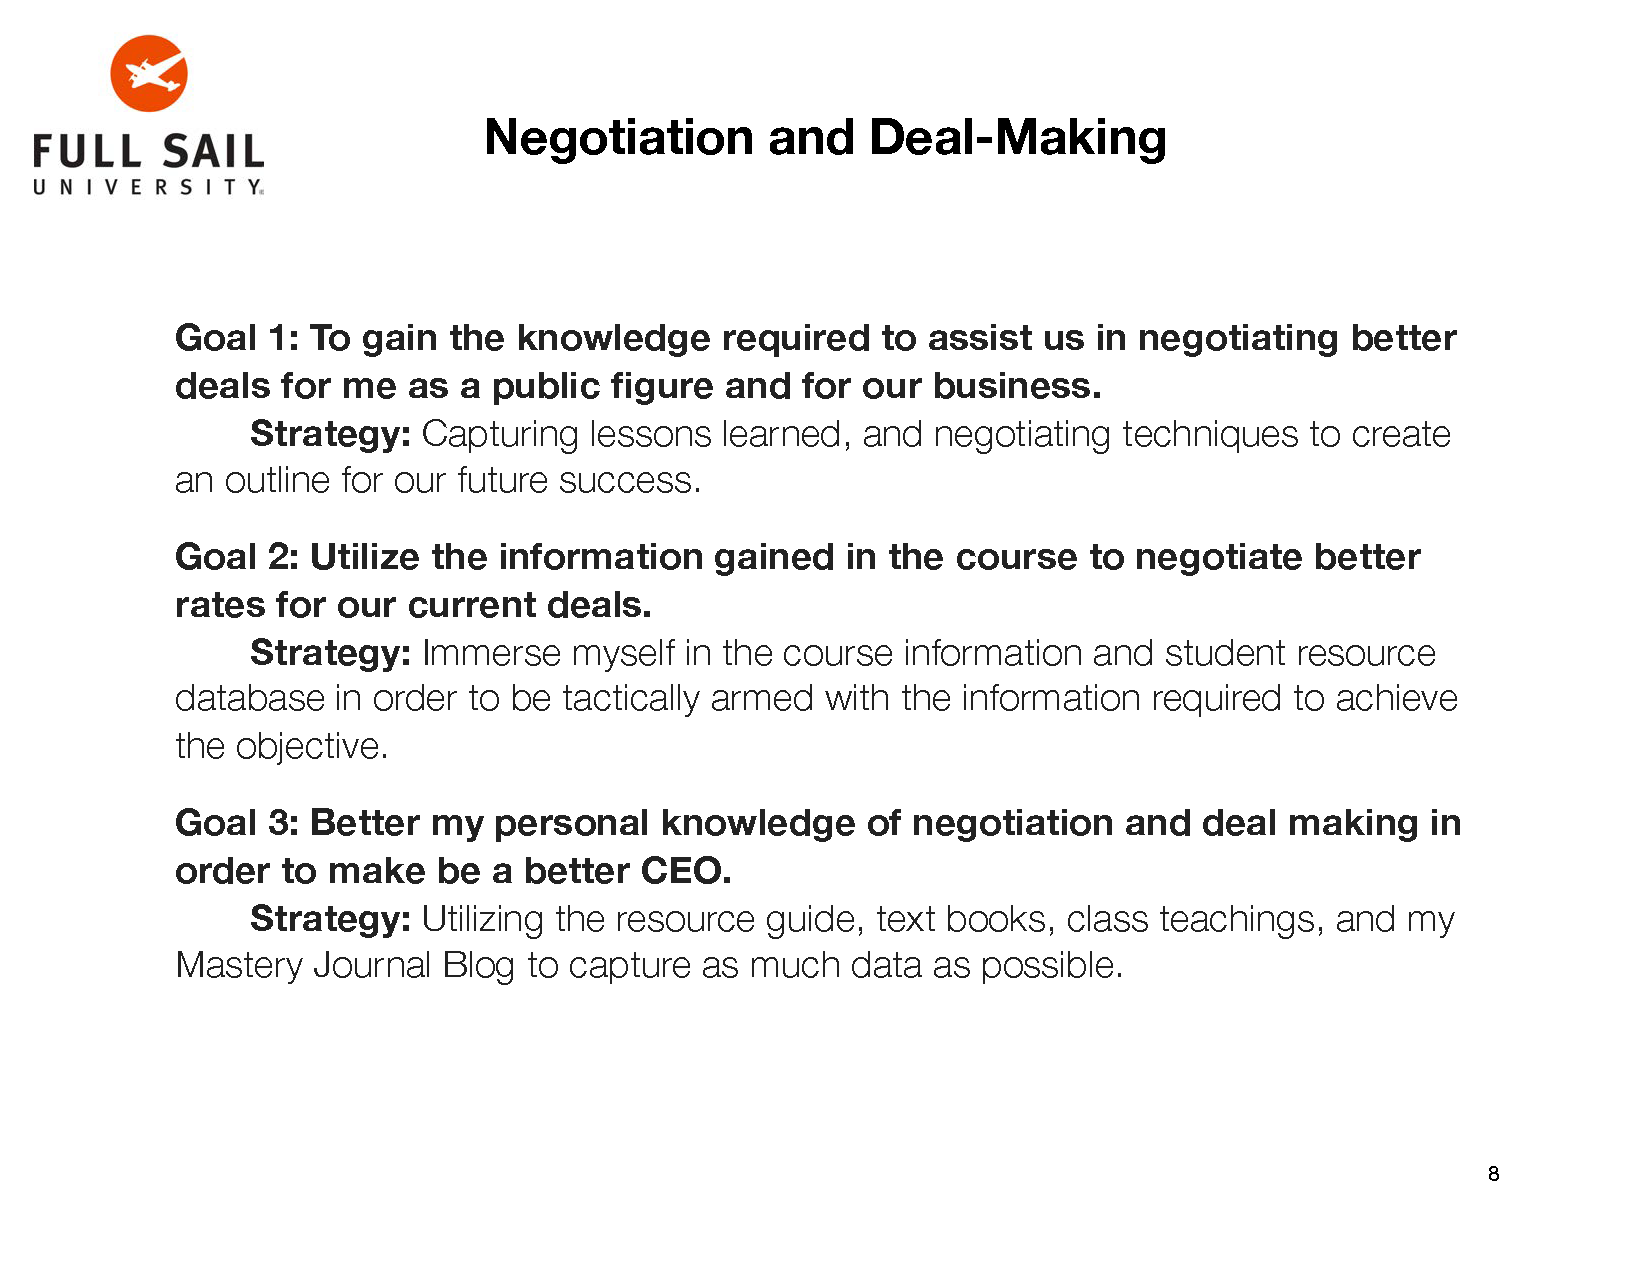 4.2 Assignment- Mastery Journey Timeline copy_Page_08.png